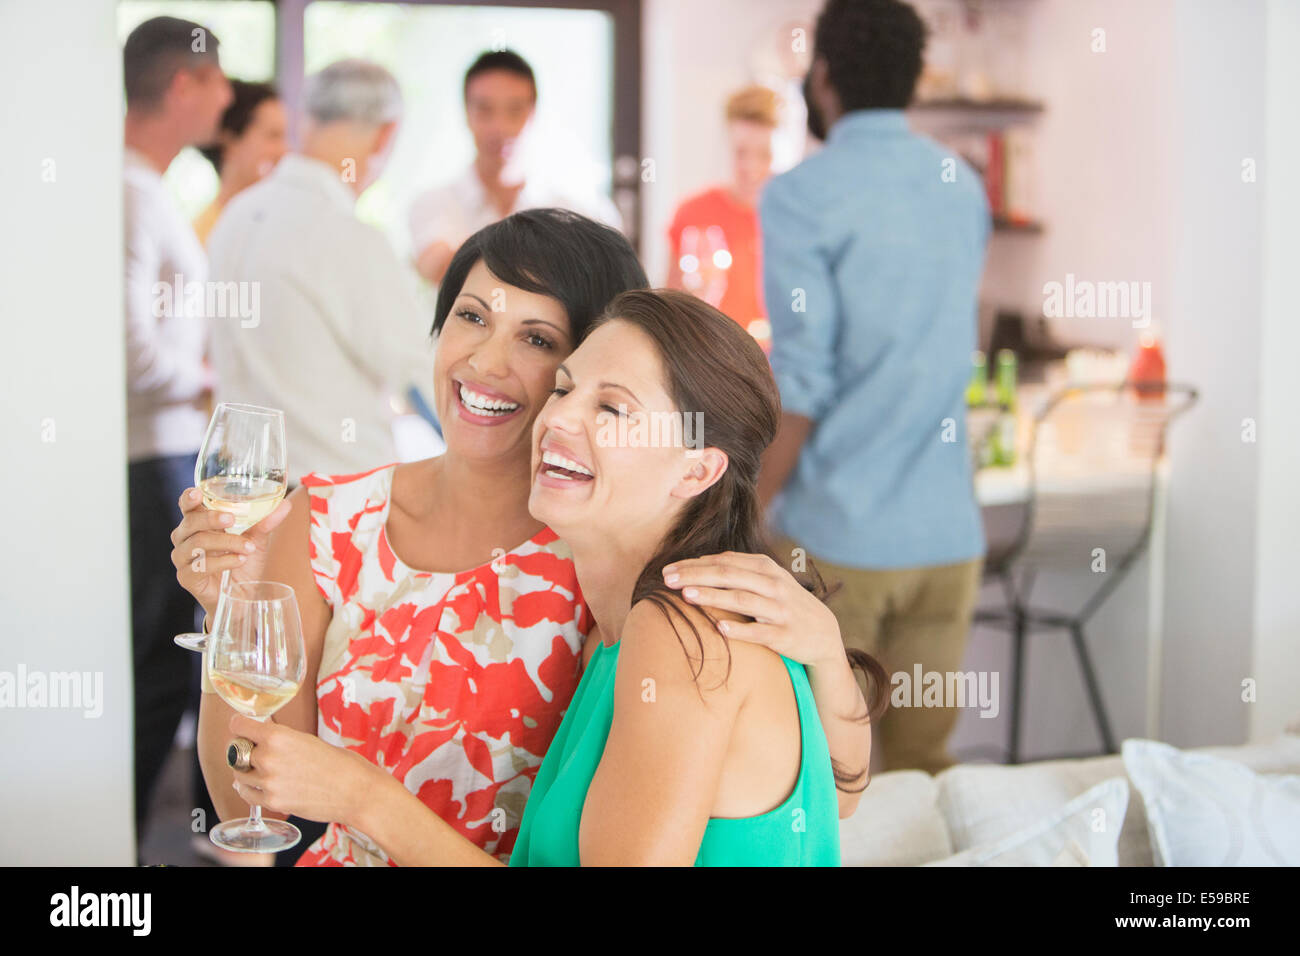 Women hugging at party - Stock Image